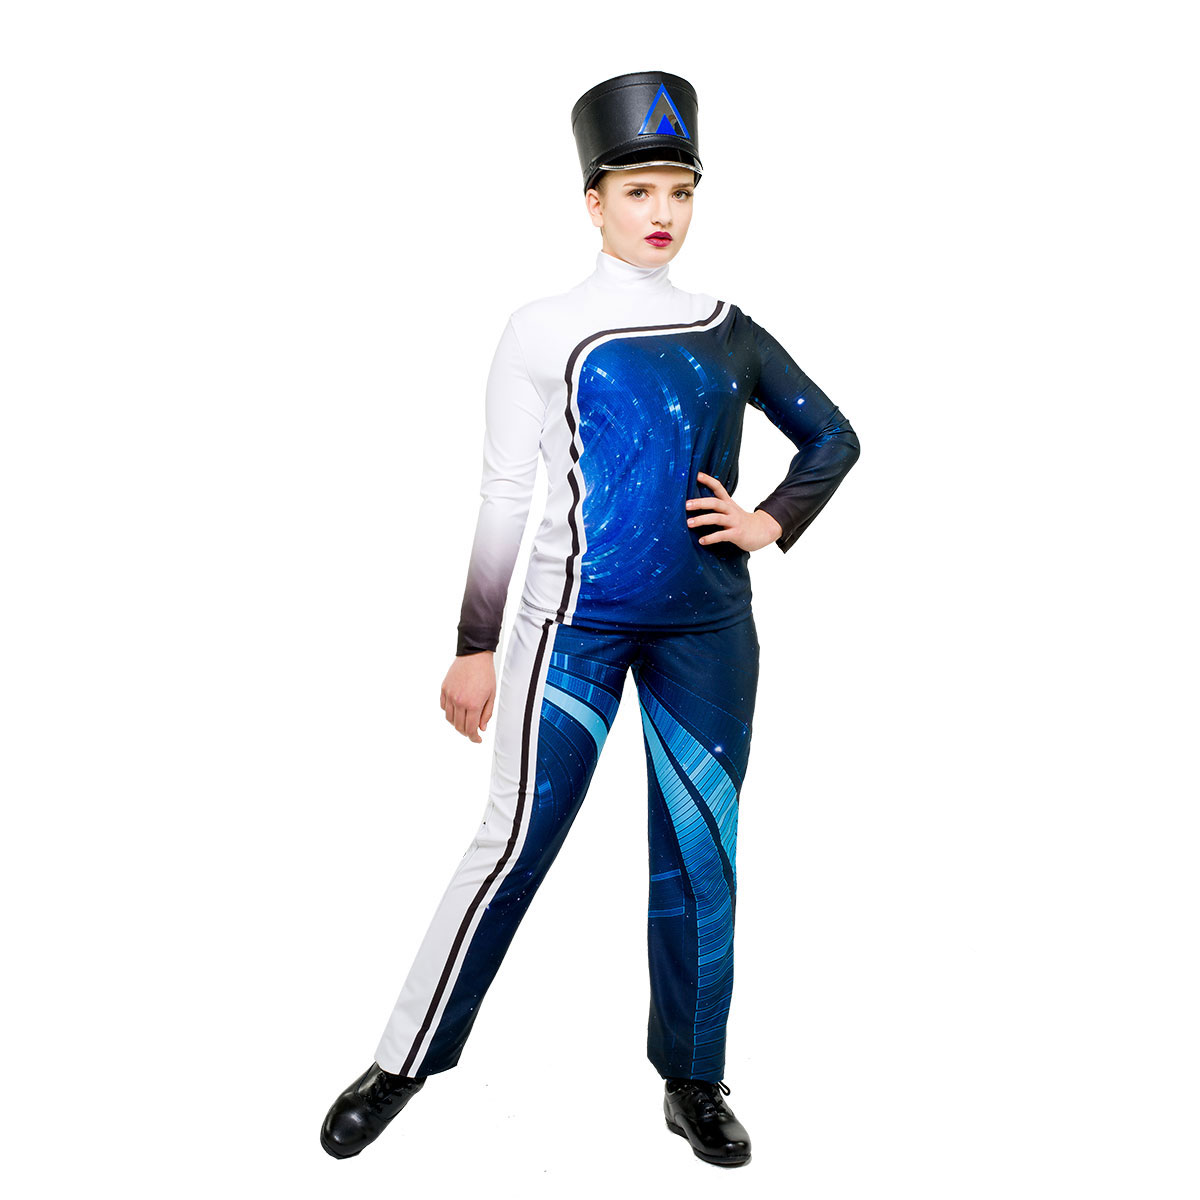 Digital Band Uniforms: Space